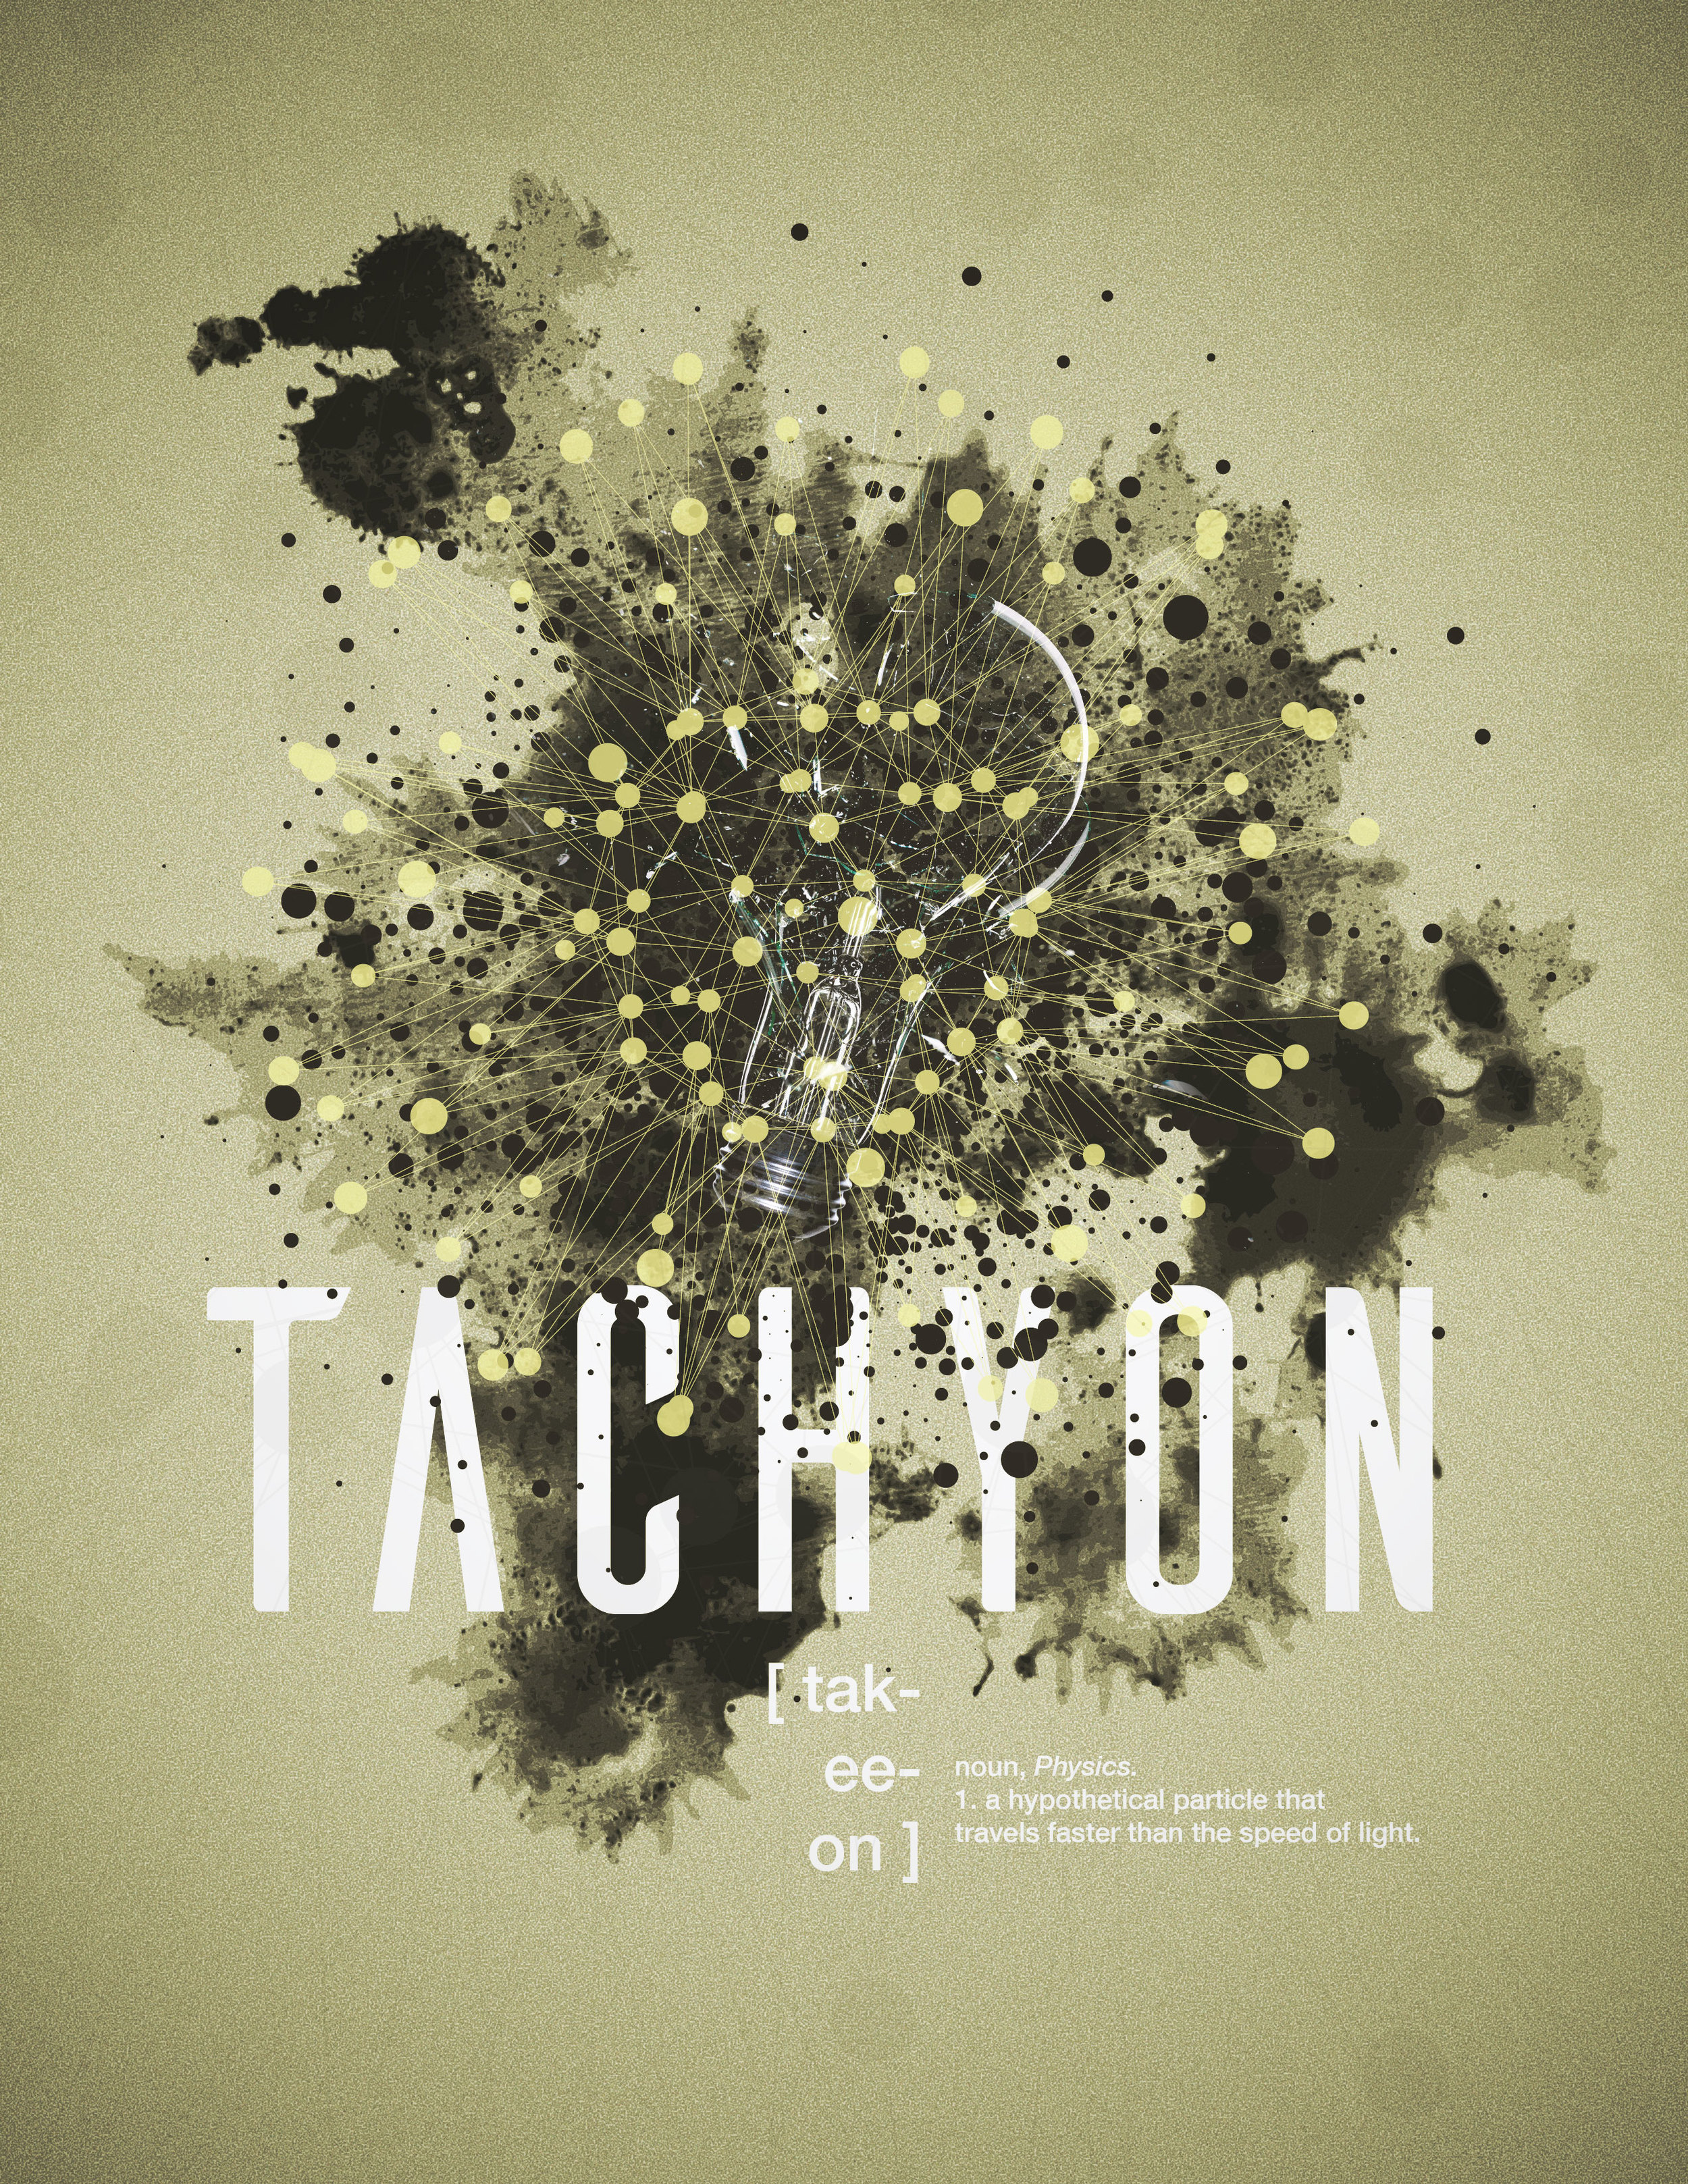 *If this image was made of tachyon particles, you wouldn't even be able to see it, duuuuude.